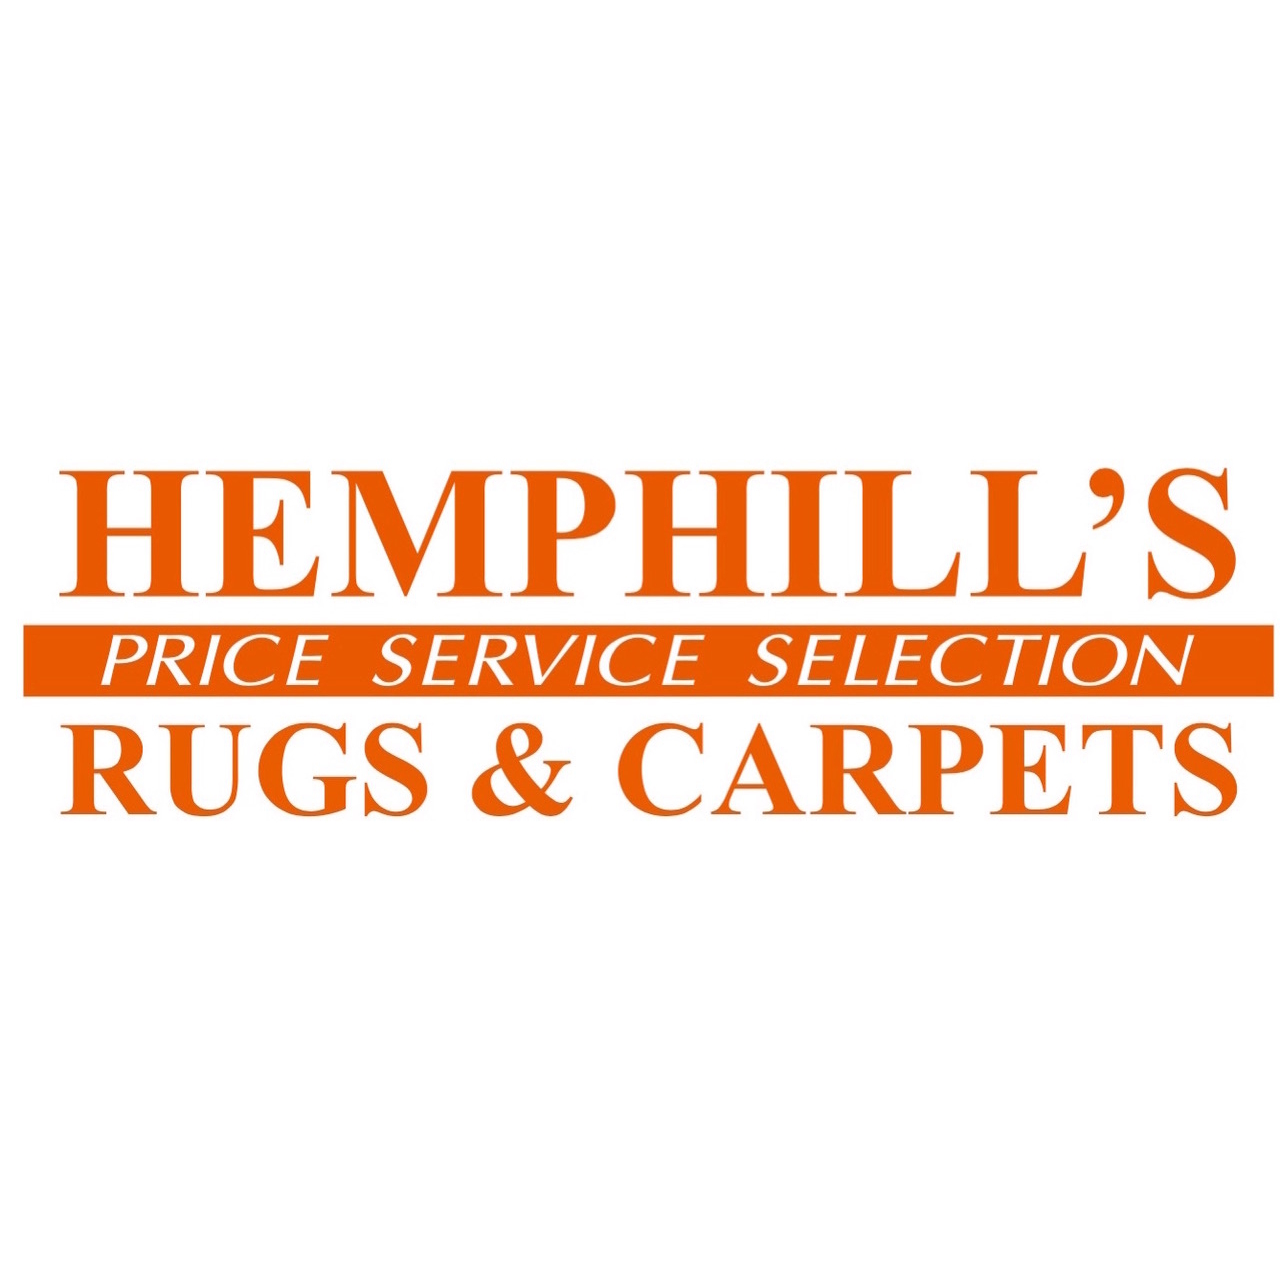 HEMPHILL'S RUGS and CARPETS - Costa Mesa, CA - Carpet & Floor Coverings